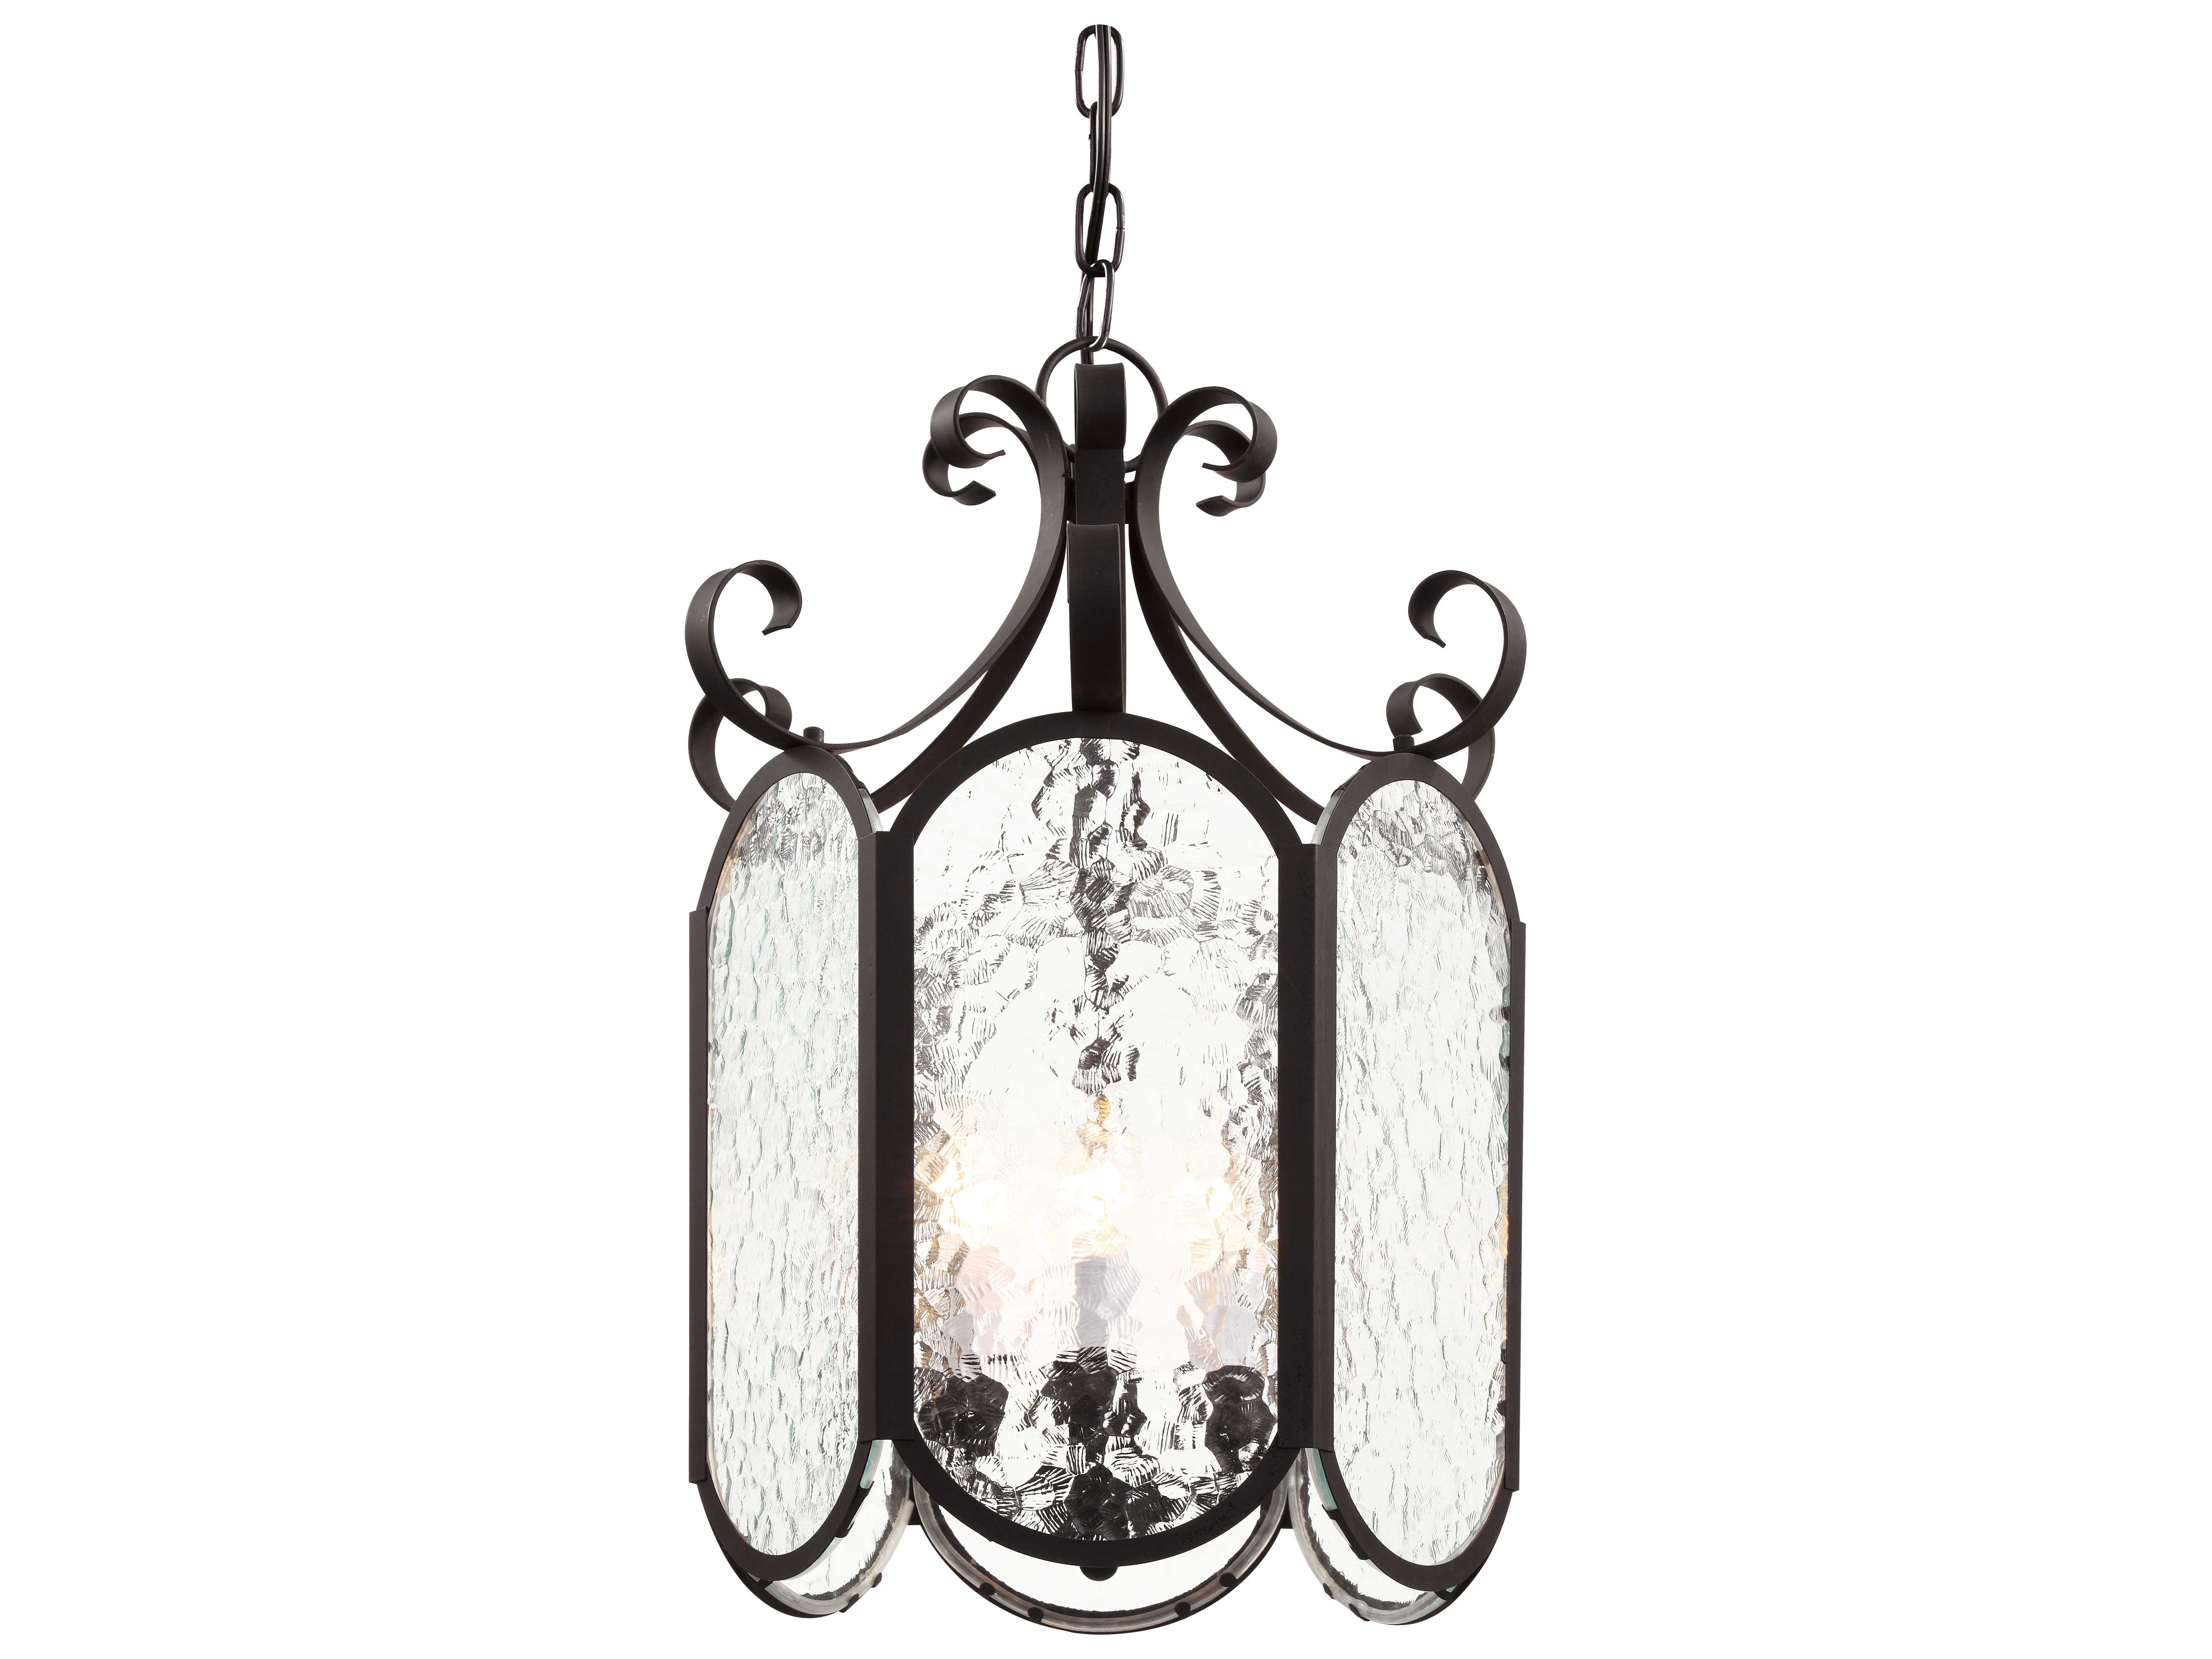 Black Foyer Lighting : Trans globe lighting new victorian black six light foyer